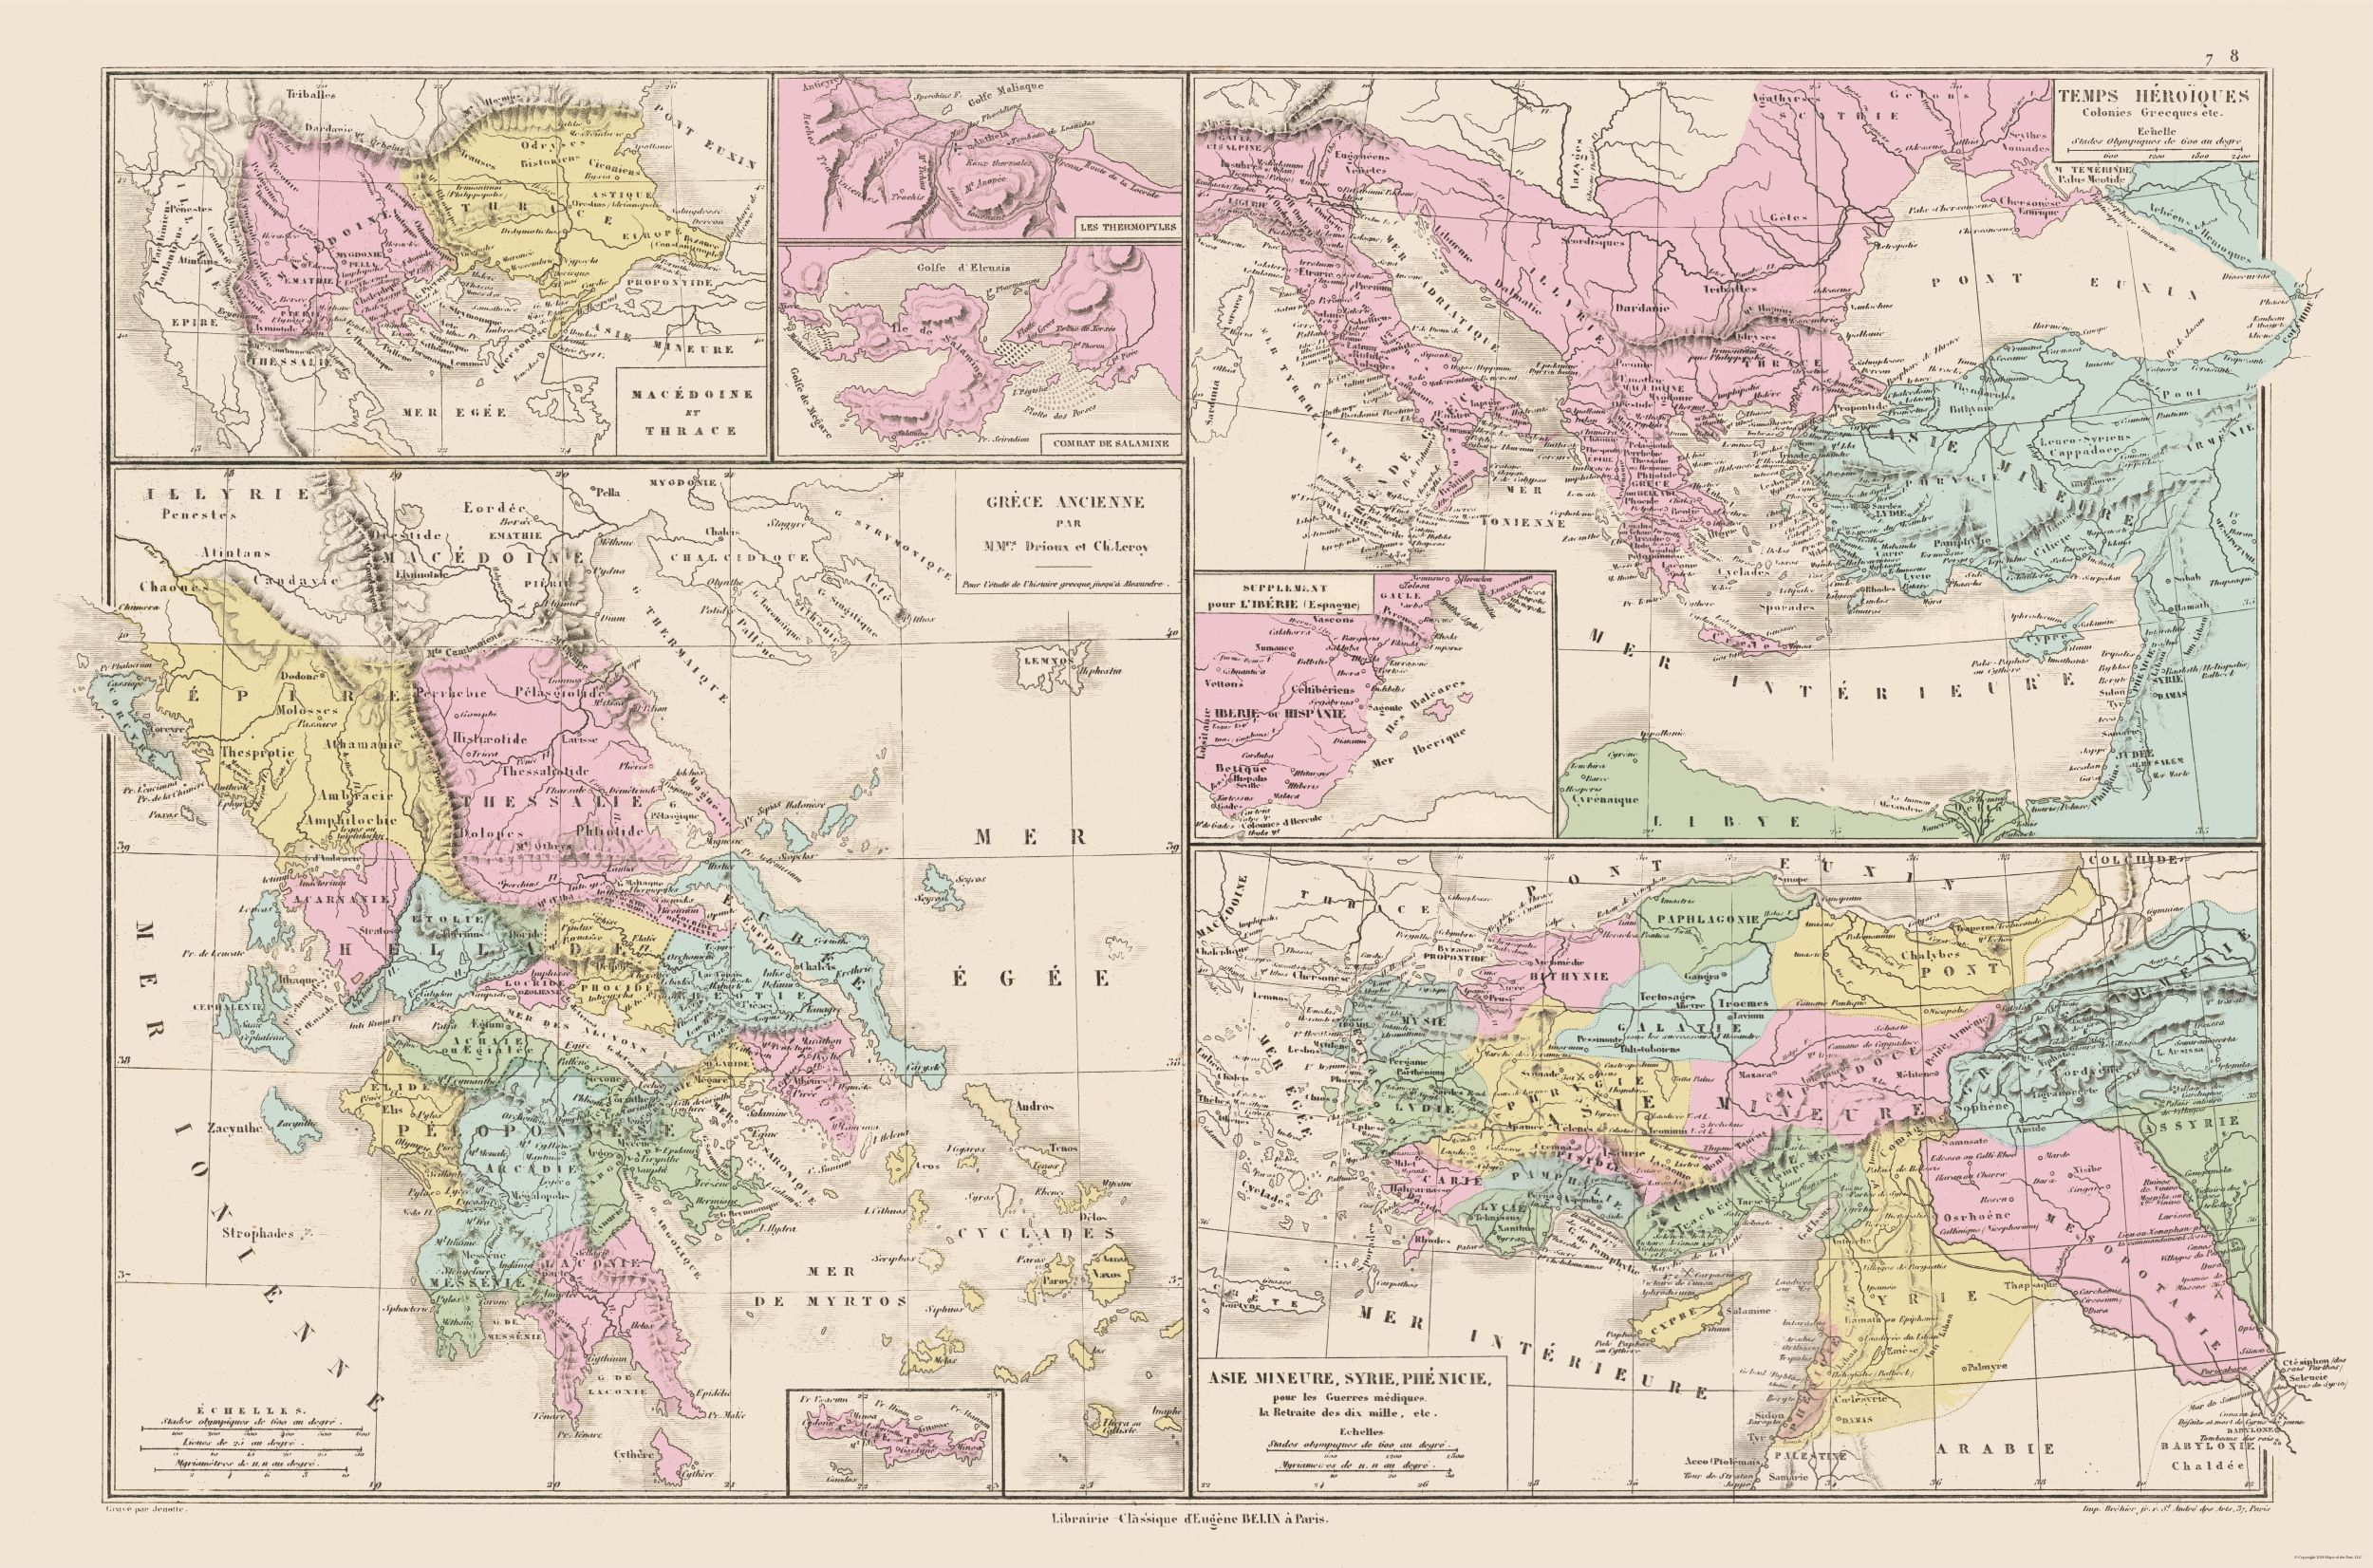 International Map - Eastern Europe, Middle East - Drioux 1882 - 34.81 x 23